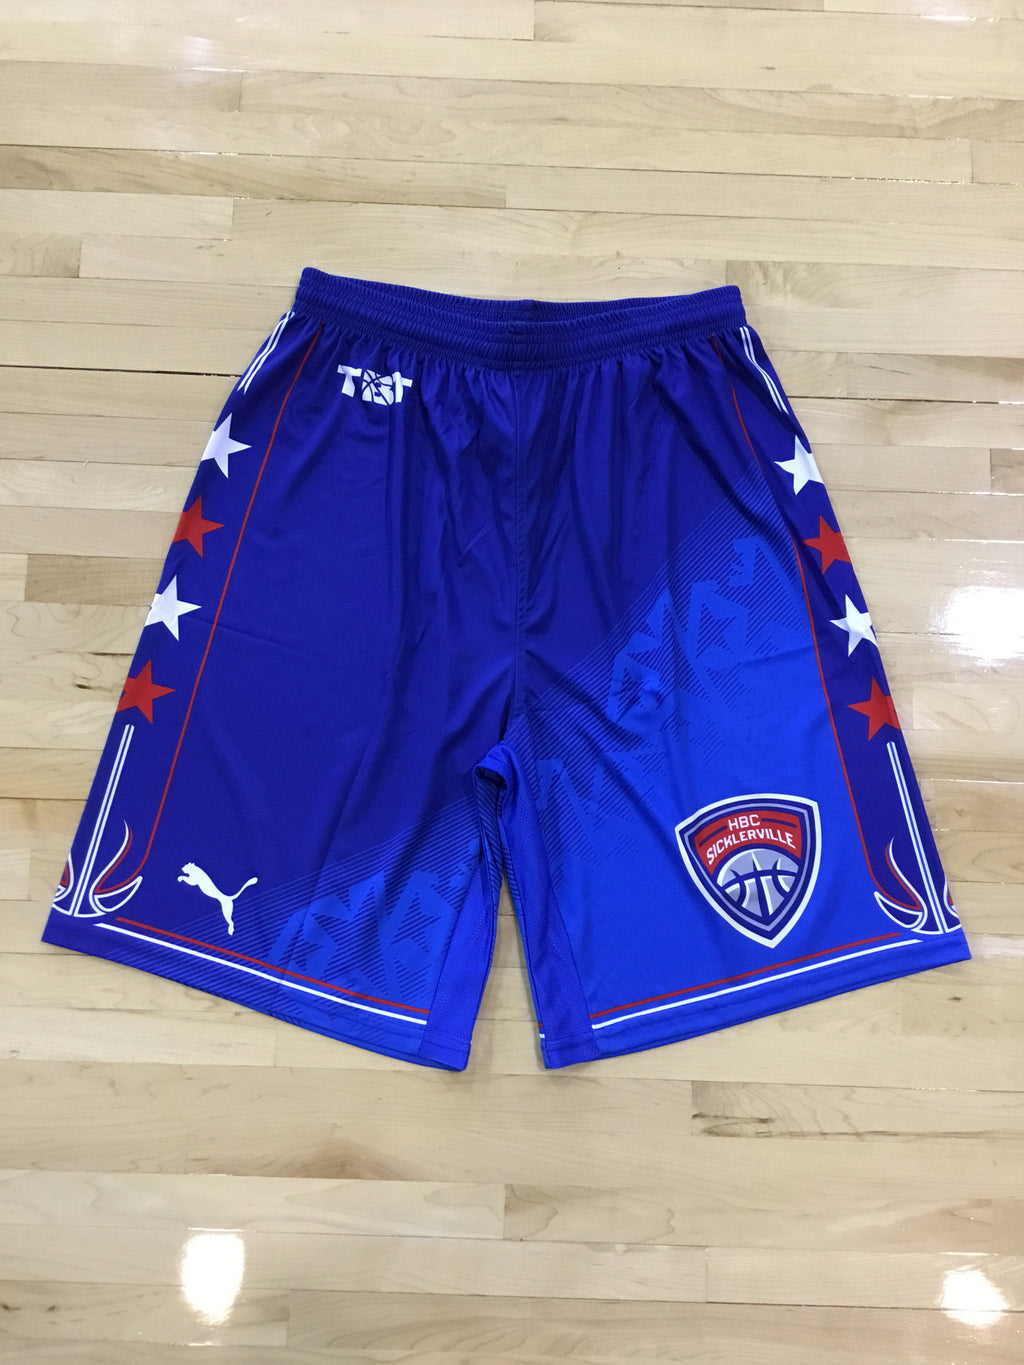 HBC Sicklerville - 2018 Official Team Shorts (Blue)